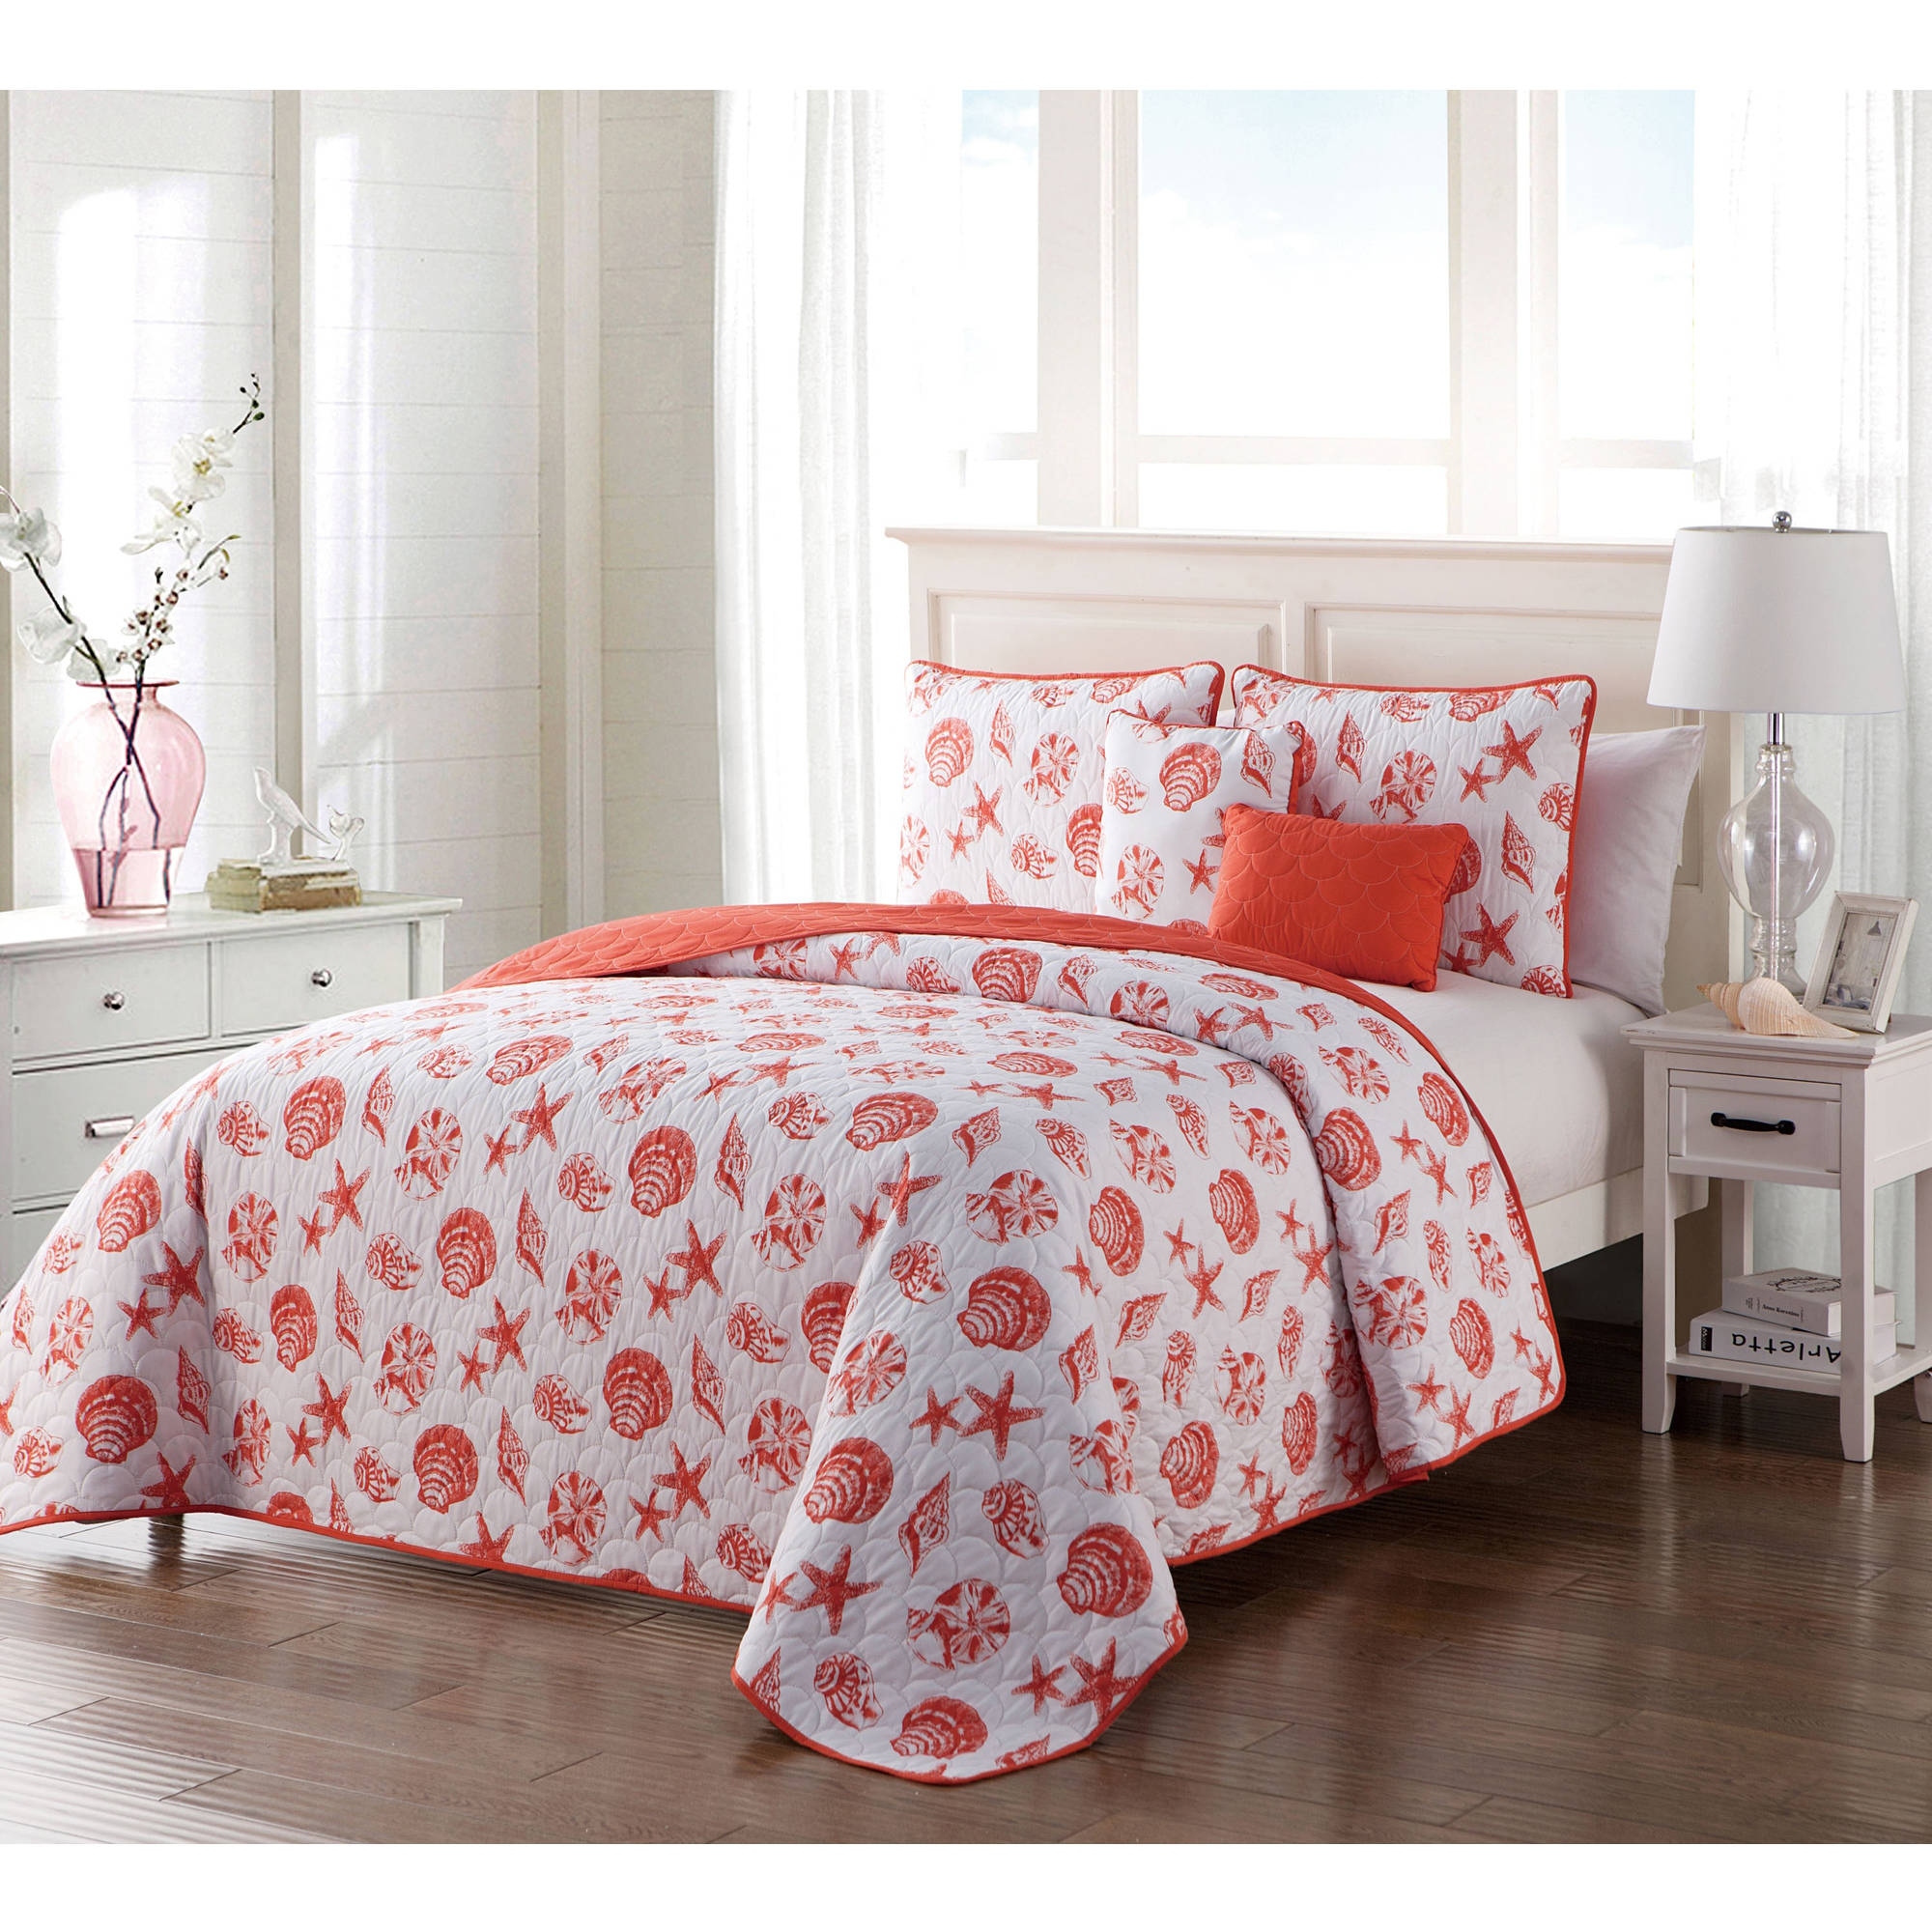 VCNY Home Coastal-Inspired Seashell 4/5 Piece Marco Inspired Reversible Bedding Quilt Set, Decorative Pillows Included